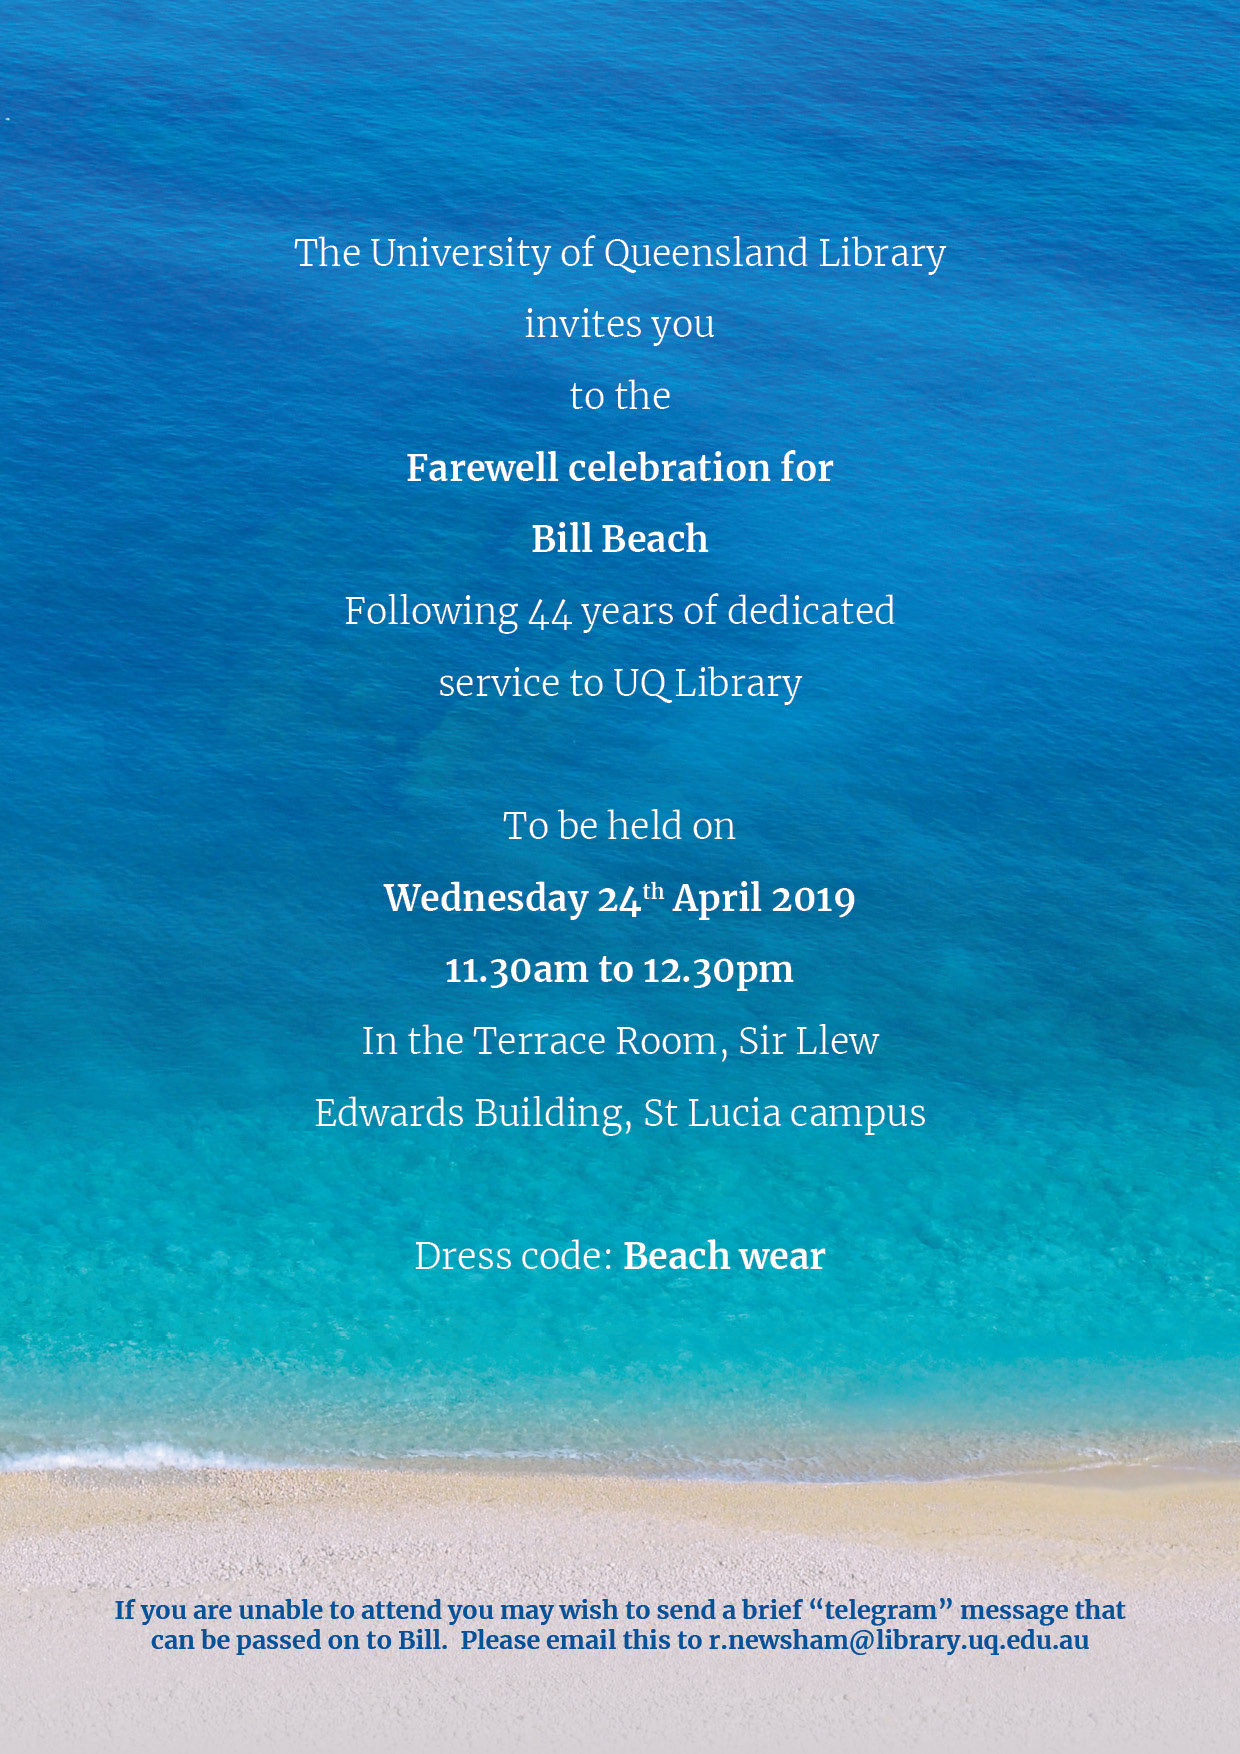 """The University of Queensland Library invites you to the Farewell celebration for Bill Beach Following 44 years of dedicated service to UQ Library. Dress code: Beach wear. If you are unable to attend you may wish to send a brief """"telegram"""" message that can be passed on to Bill.  Please email this to r.newsham@library.uq.edu.au"""